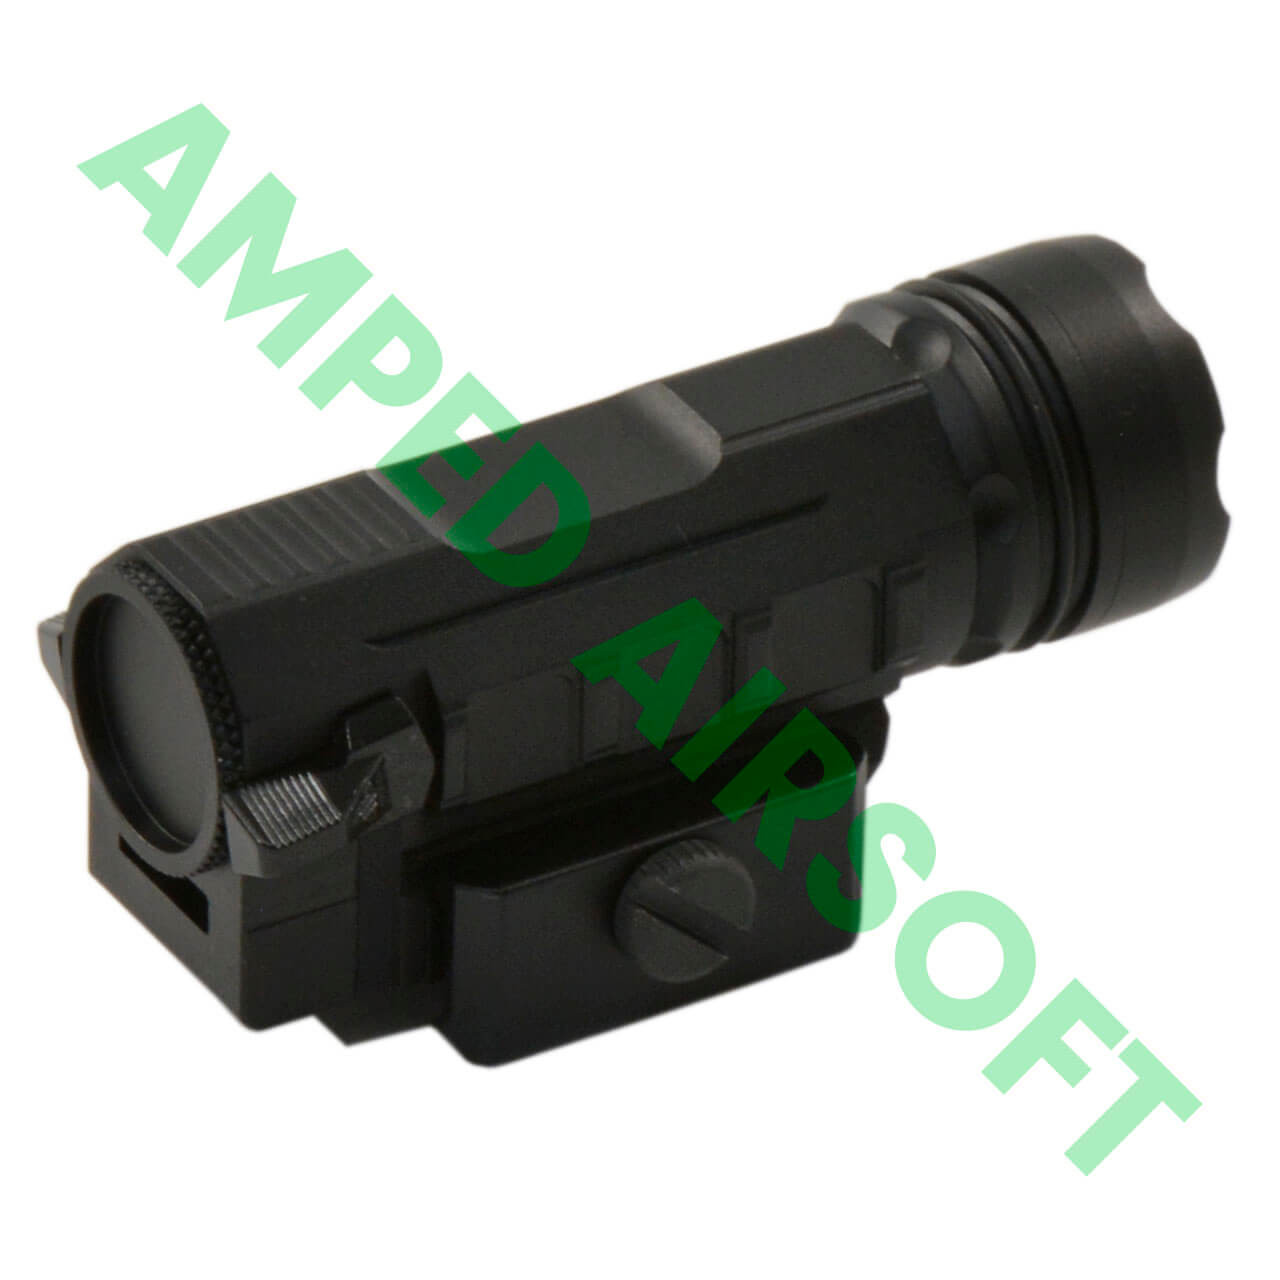 Leapers - UTG 400 Lumen Sub-Compact LED Ambi Pistol Light (Black) Rear Side View